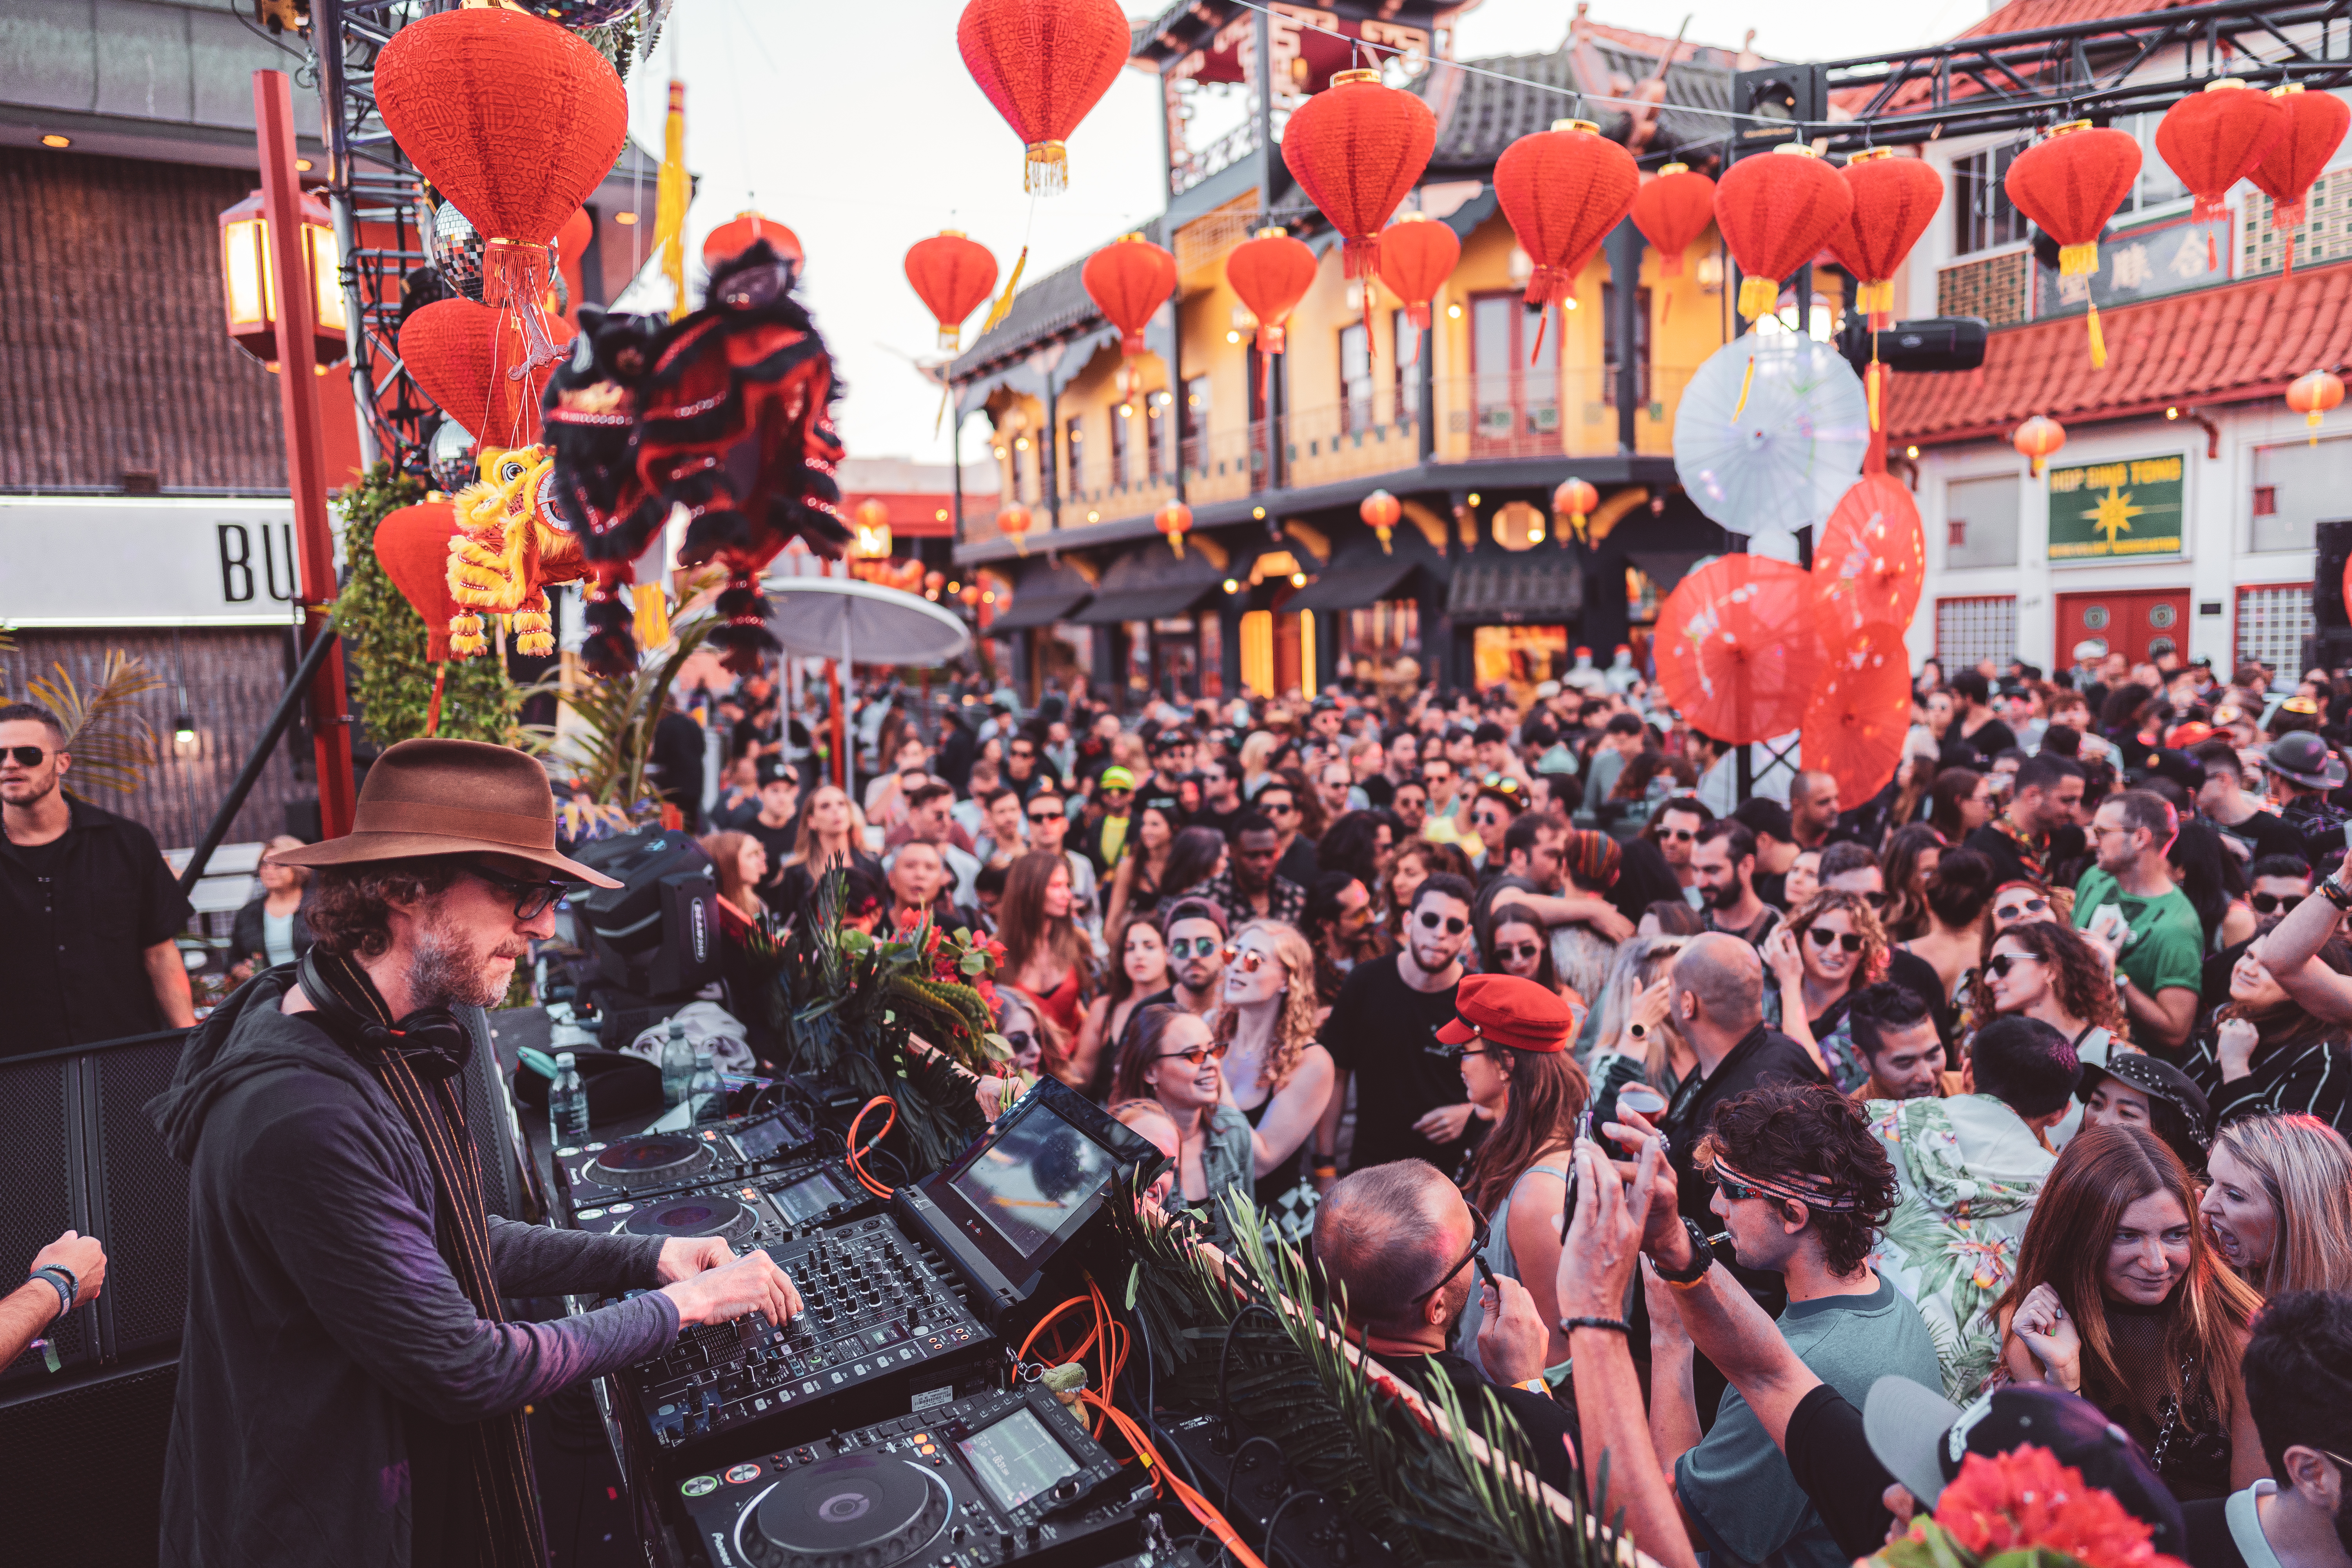 Relive DJ Tennis & Acid Pauli's Chinatown Takeover